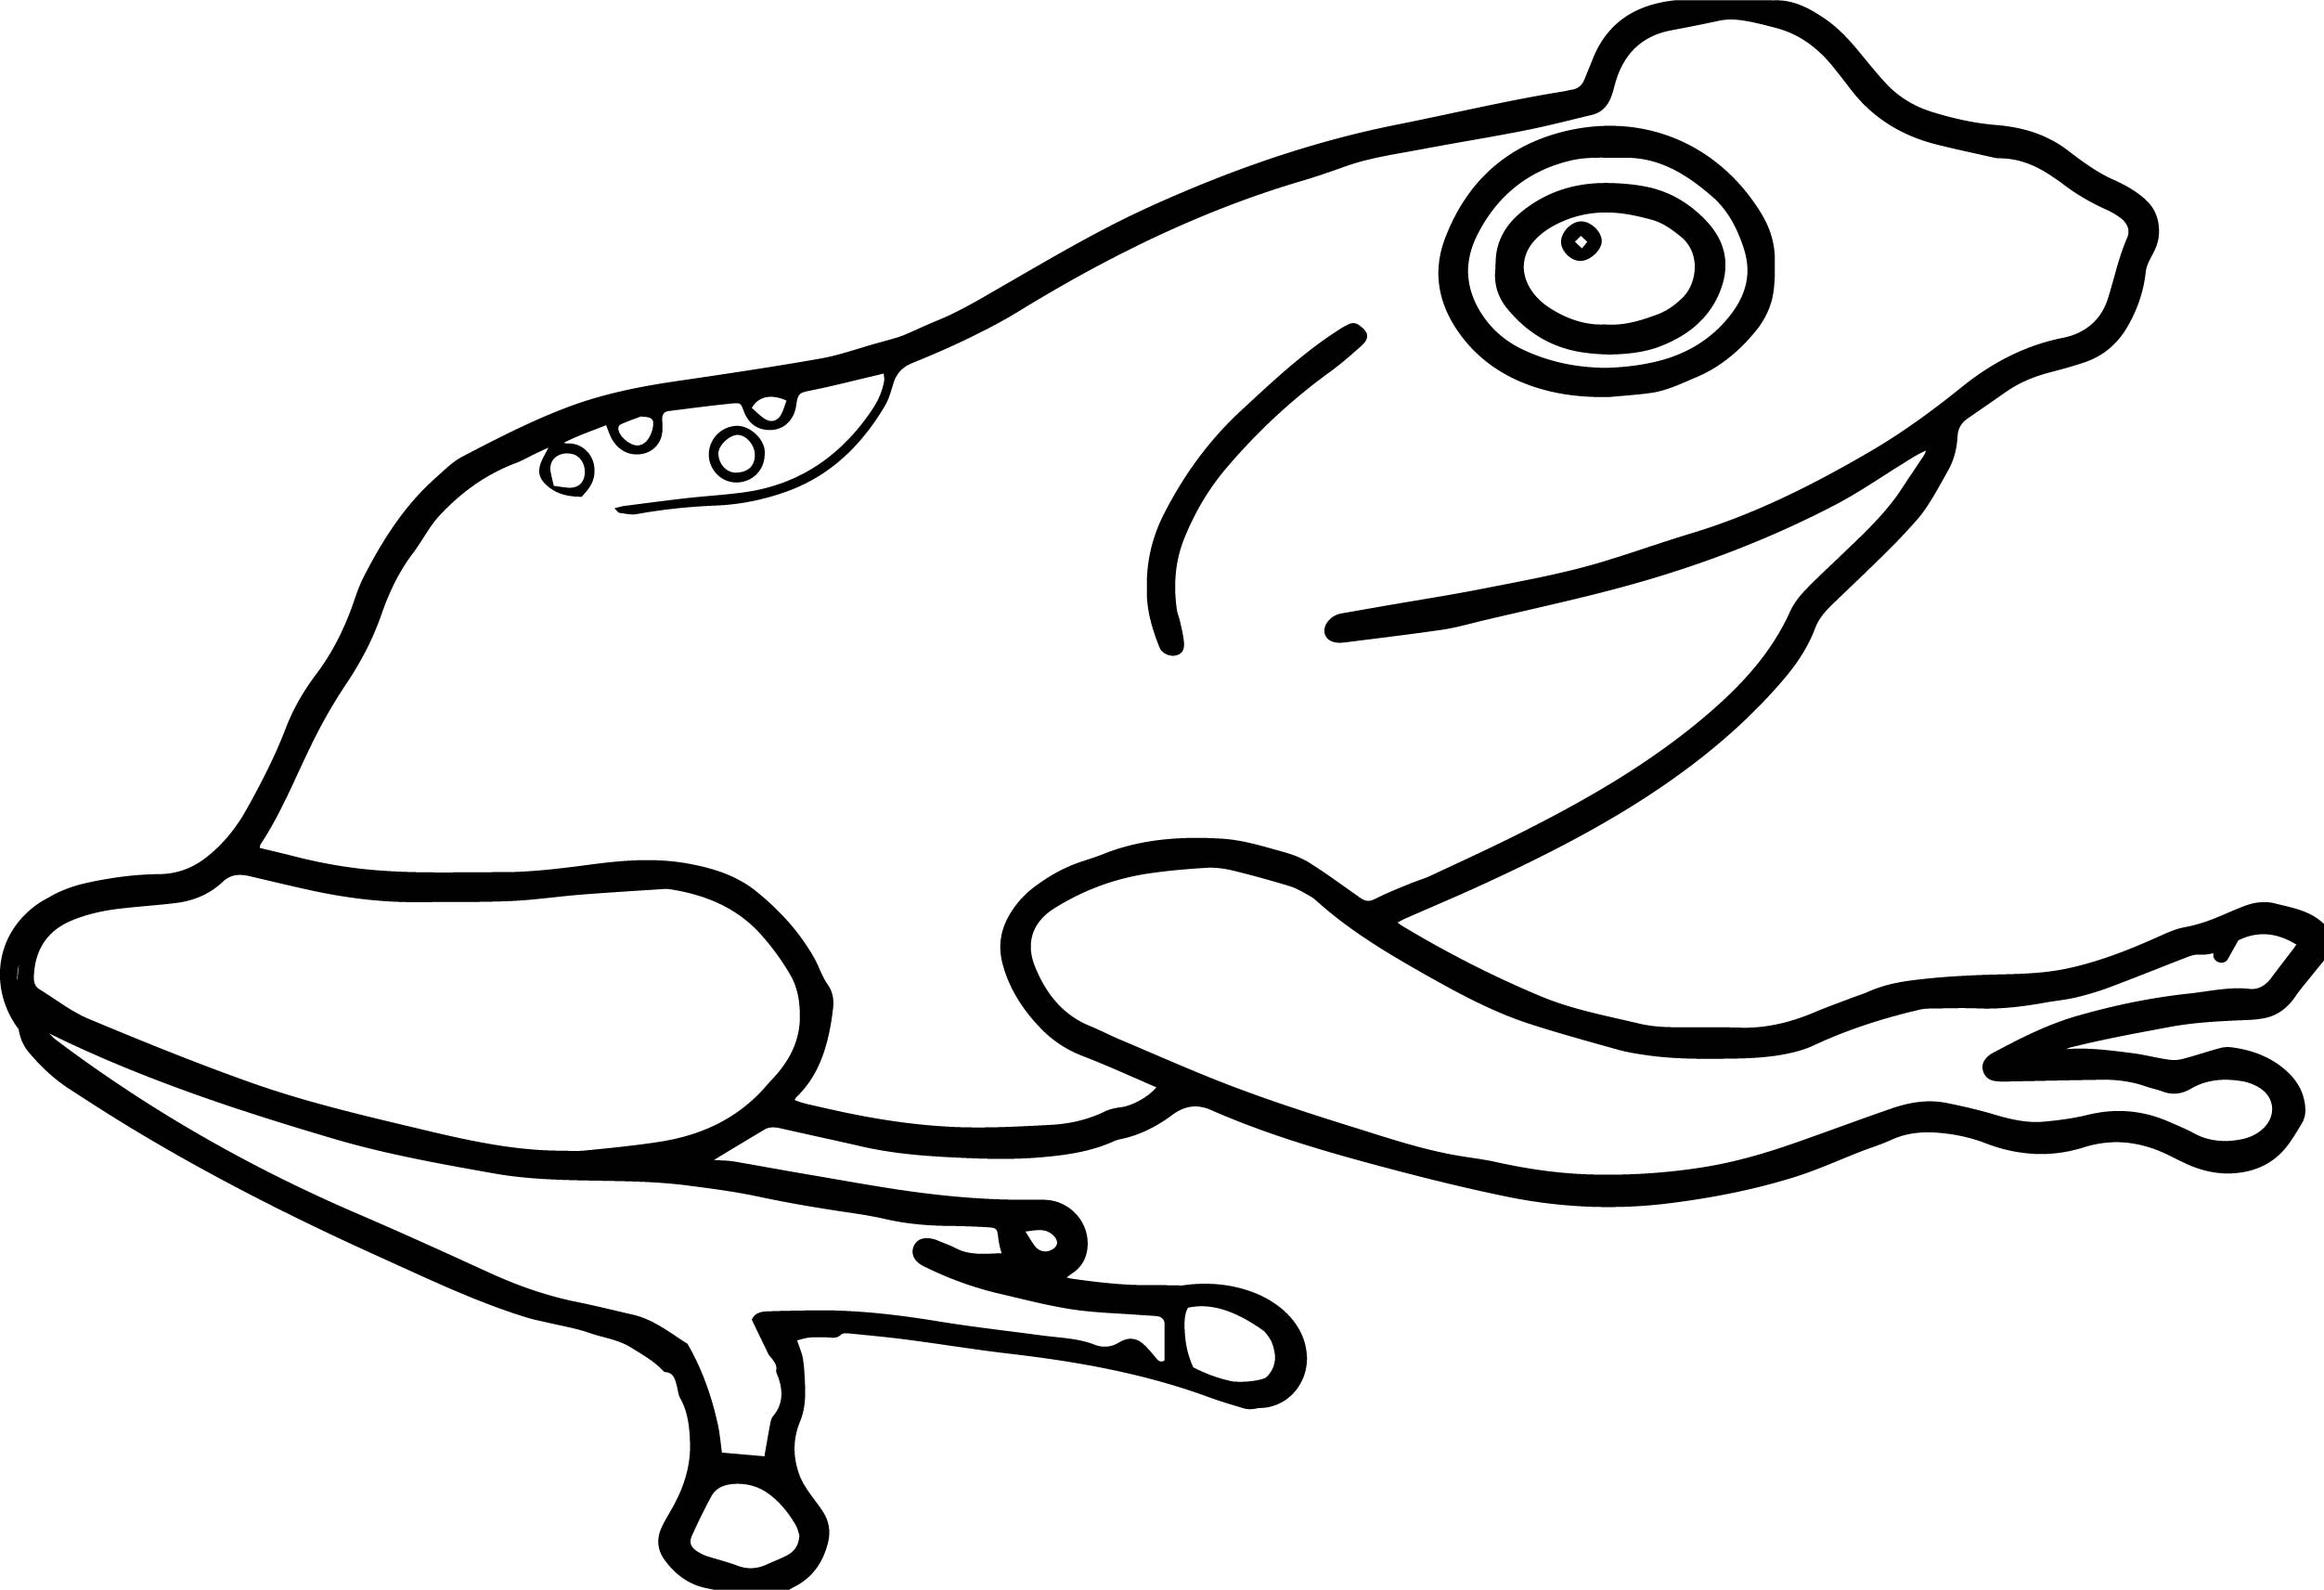 Amphibian Frog Coloring Page